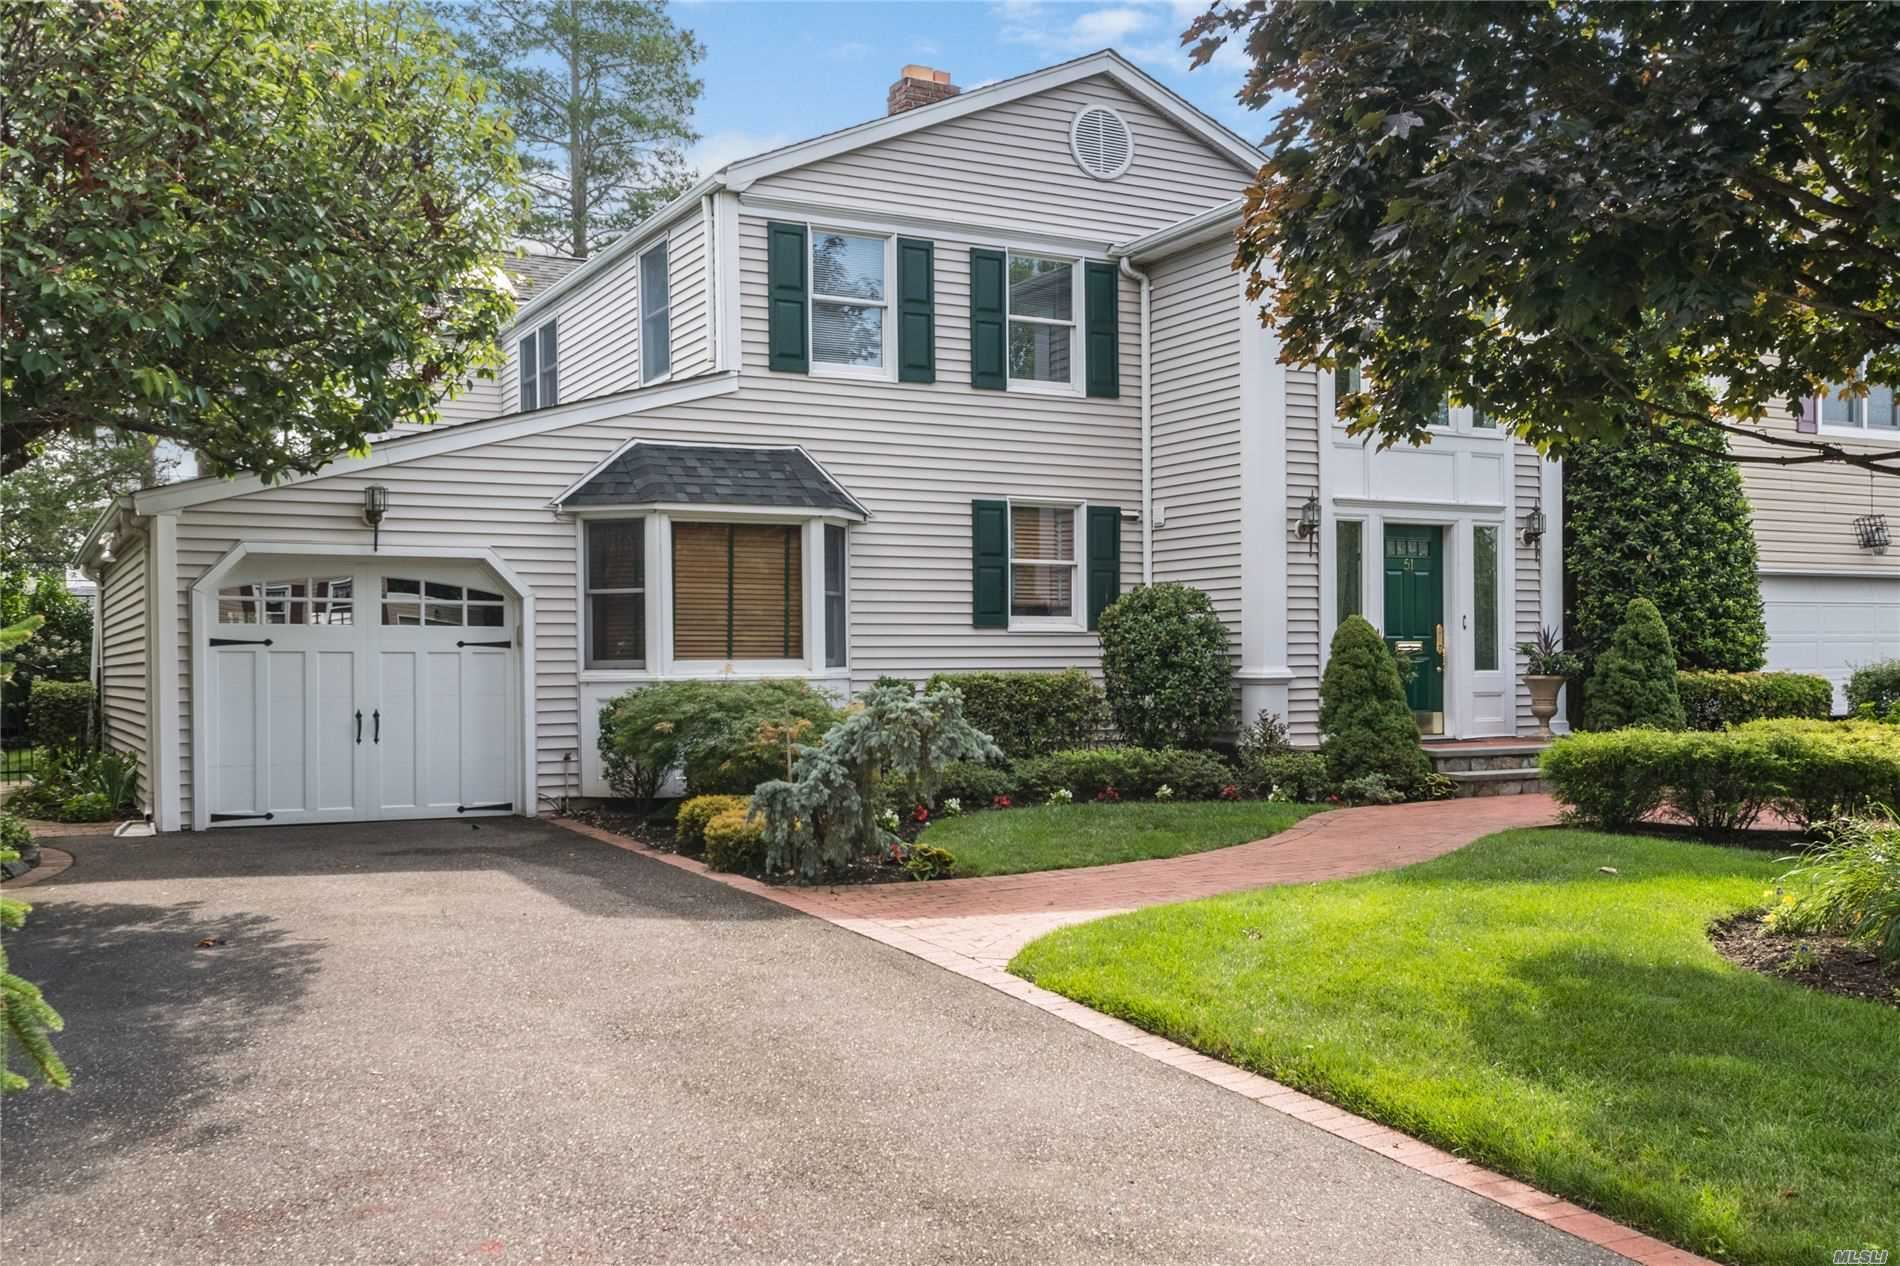 51 Titus Avenue, Carle Place, NY 11514 - MLS#: 3235111